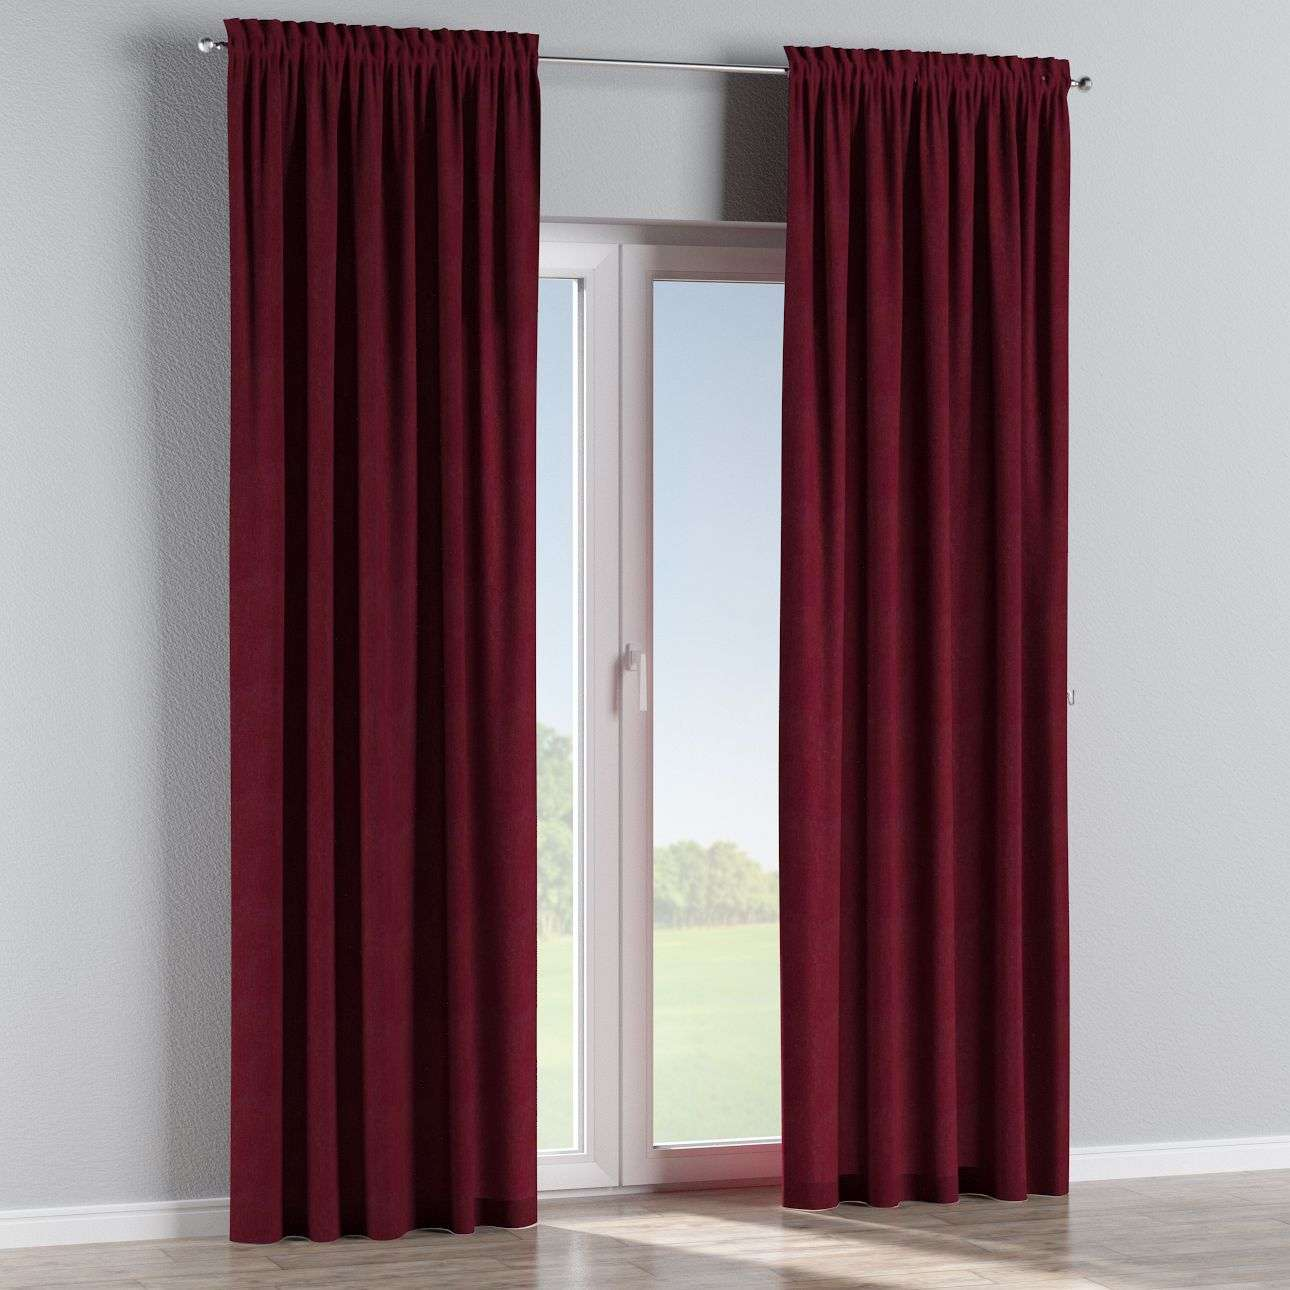 Slot and frill curtains in collection Chenille, fabric: 702-19